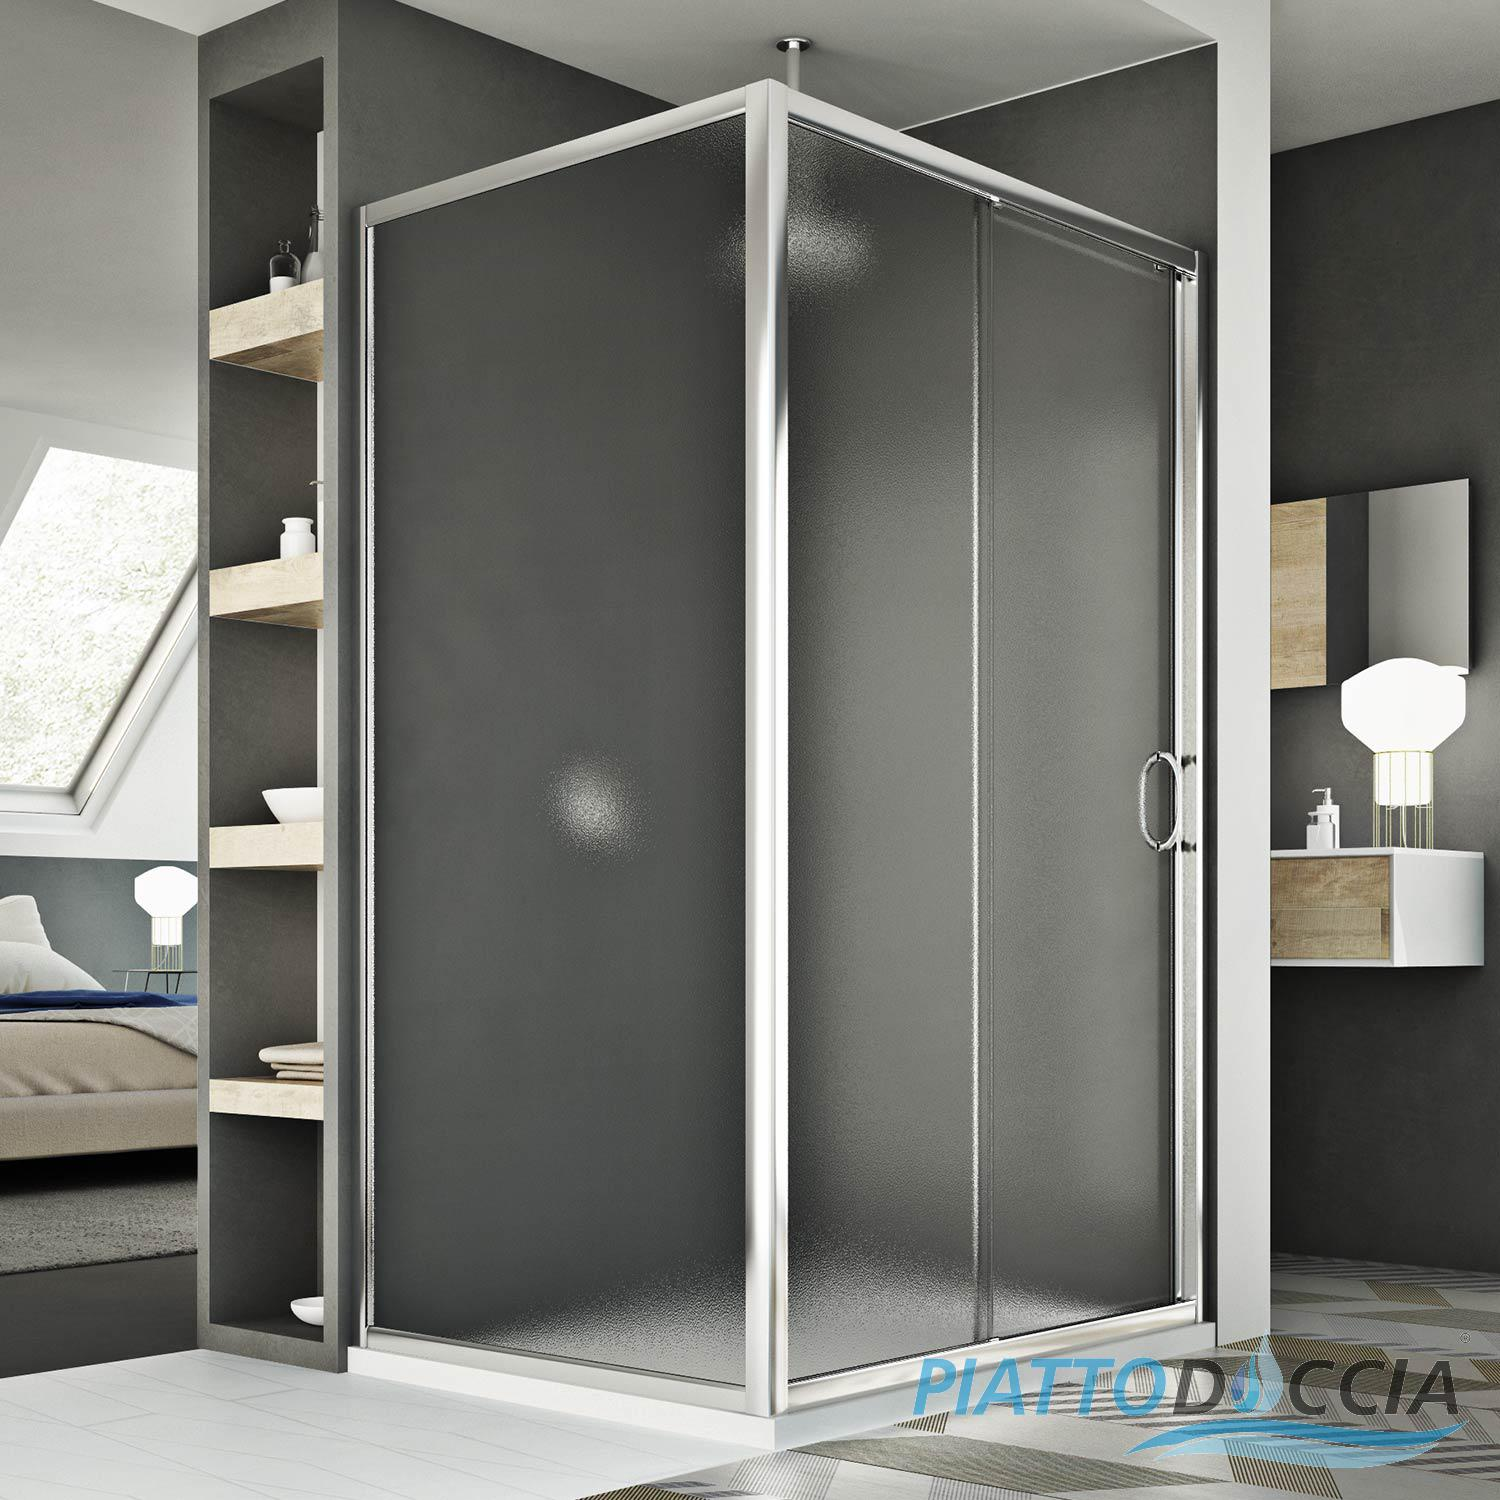 cabine de douche 2 parois porte unique coulissante en. Black Bedroom Furniture Sets. Home Design Ideas